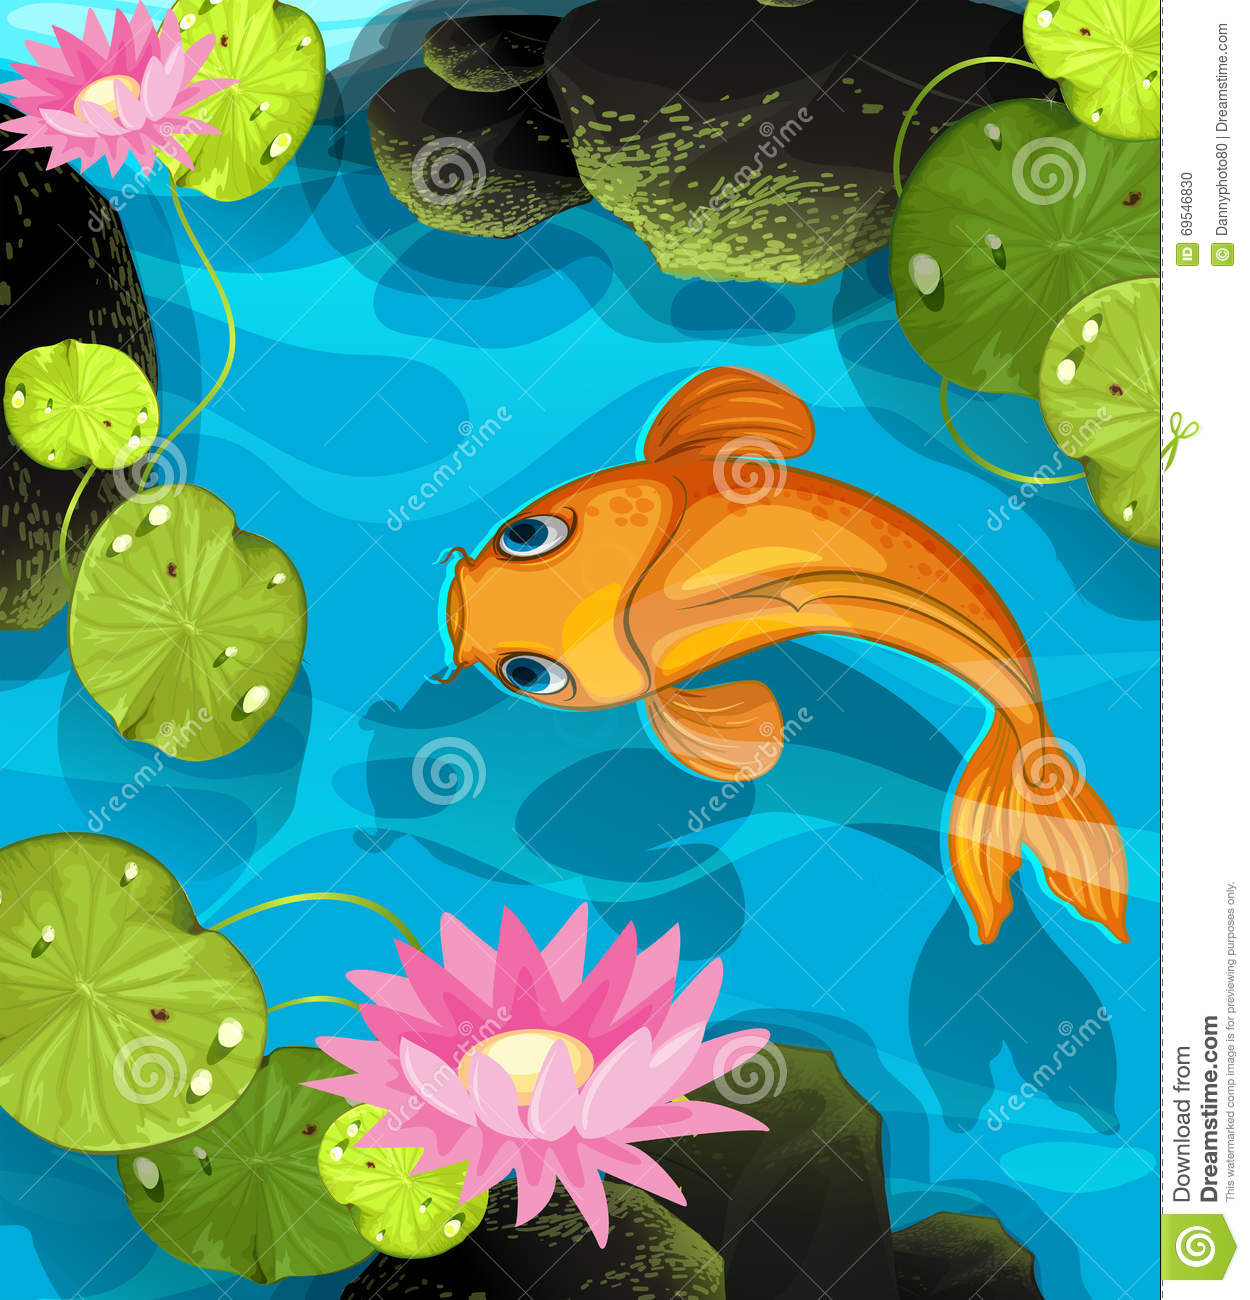 Koi swimming in the lotus pool stock vector image 69546830 for Pool koi aquatics ltd